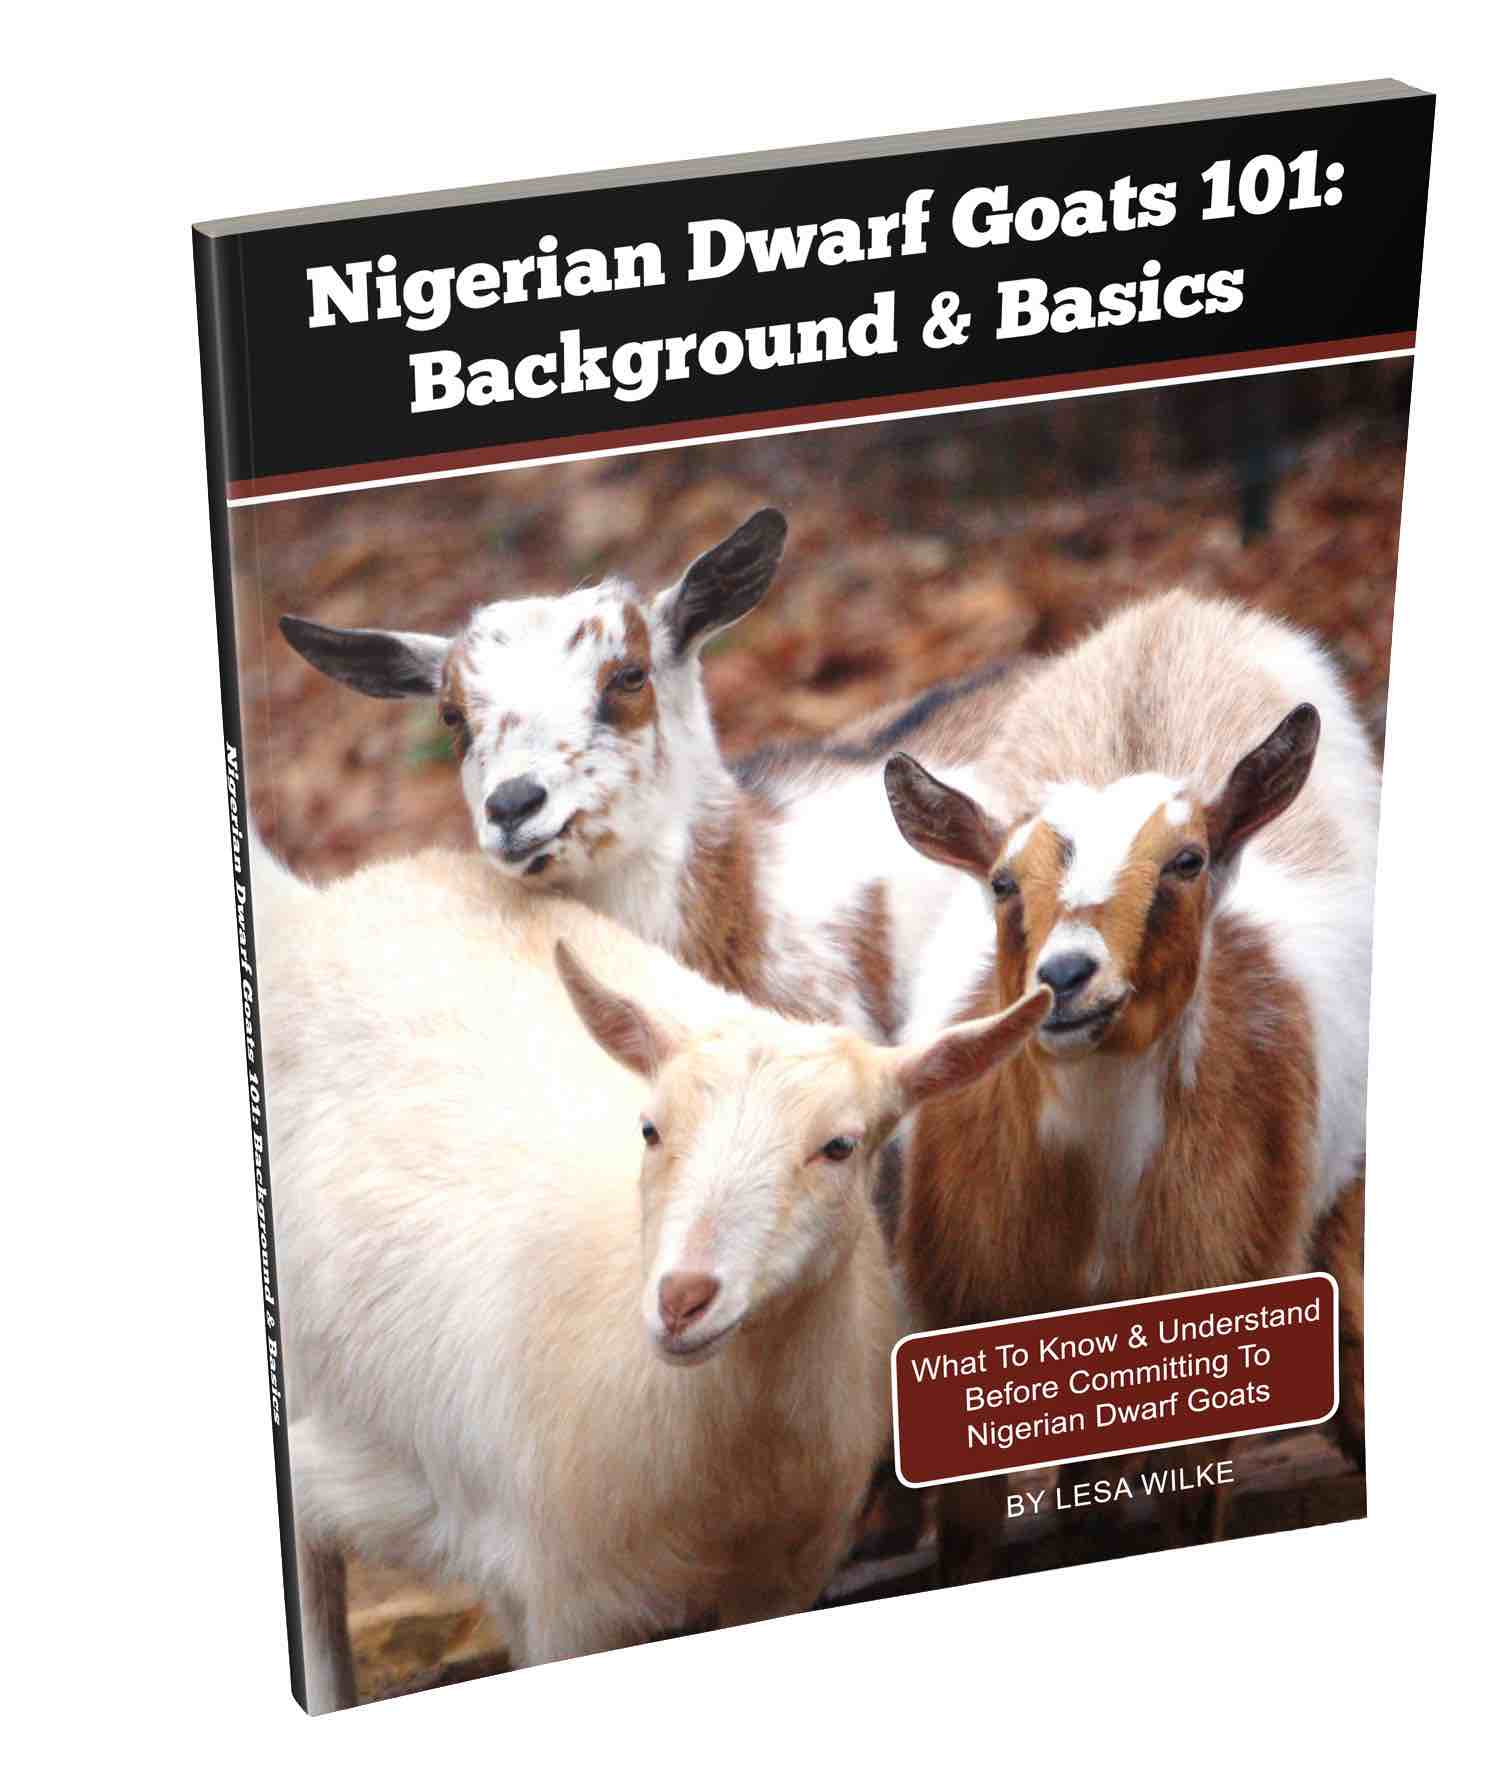 nigerian dwarf goats 101 background u0026 basics